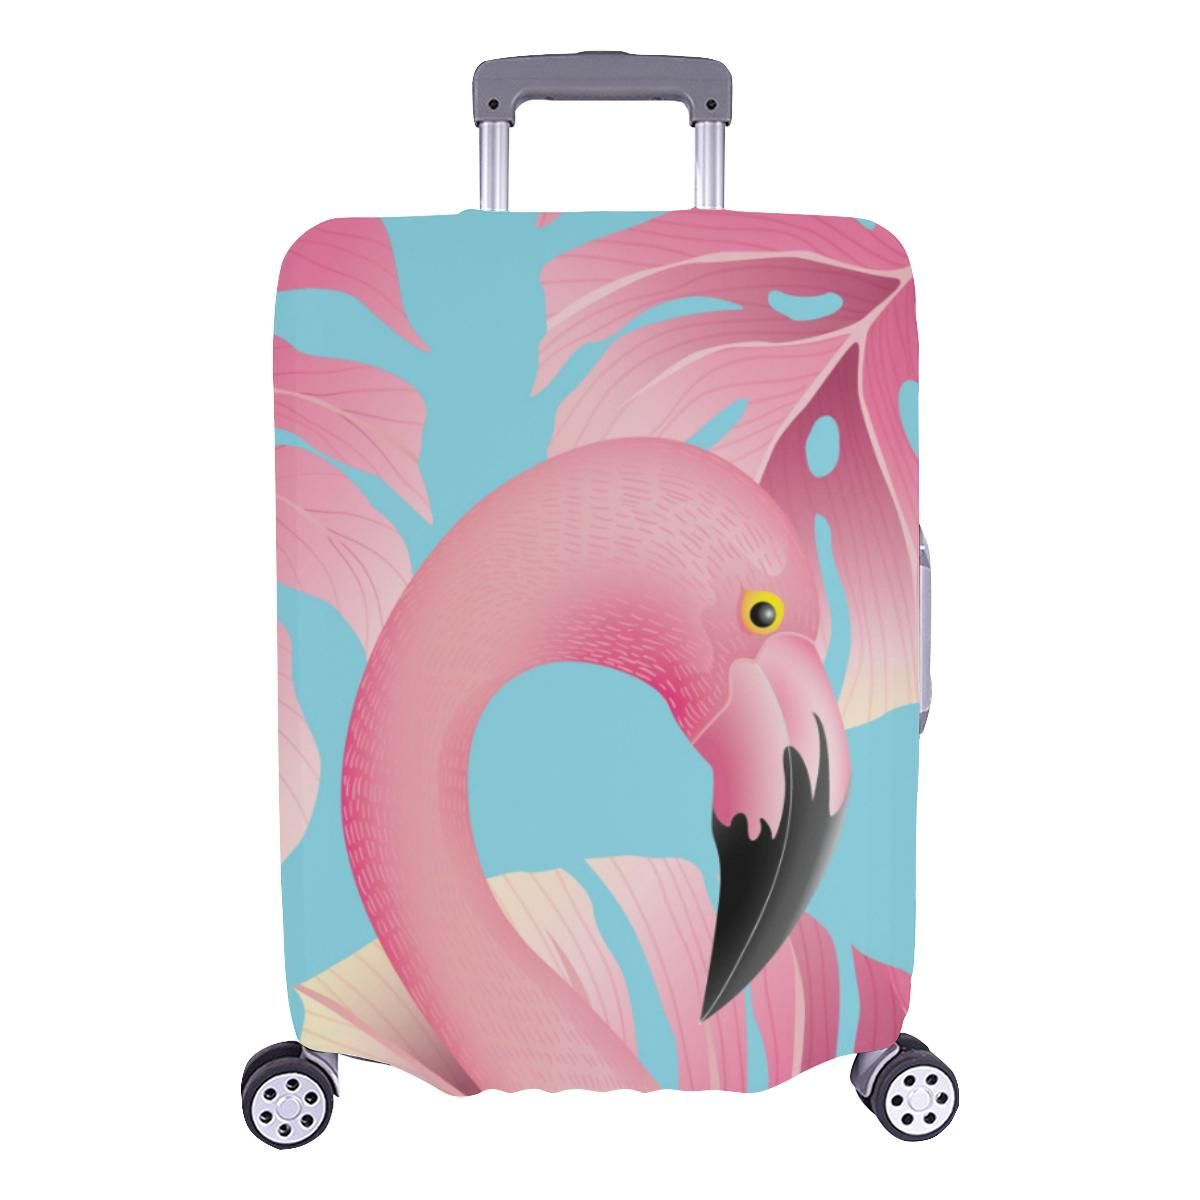 Tropical Flamingo Leather Baggage Suitcase Luggage Tags Travel Accessories